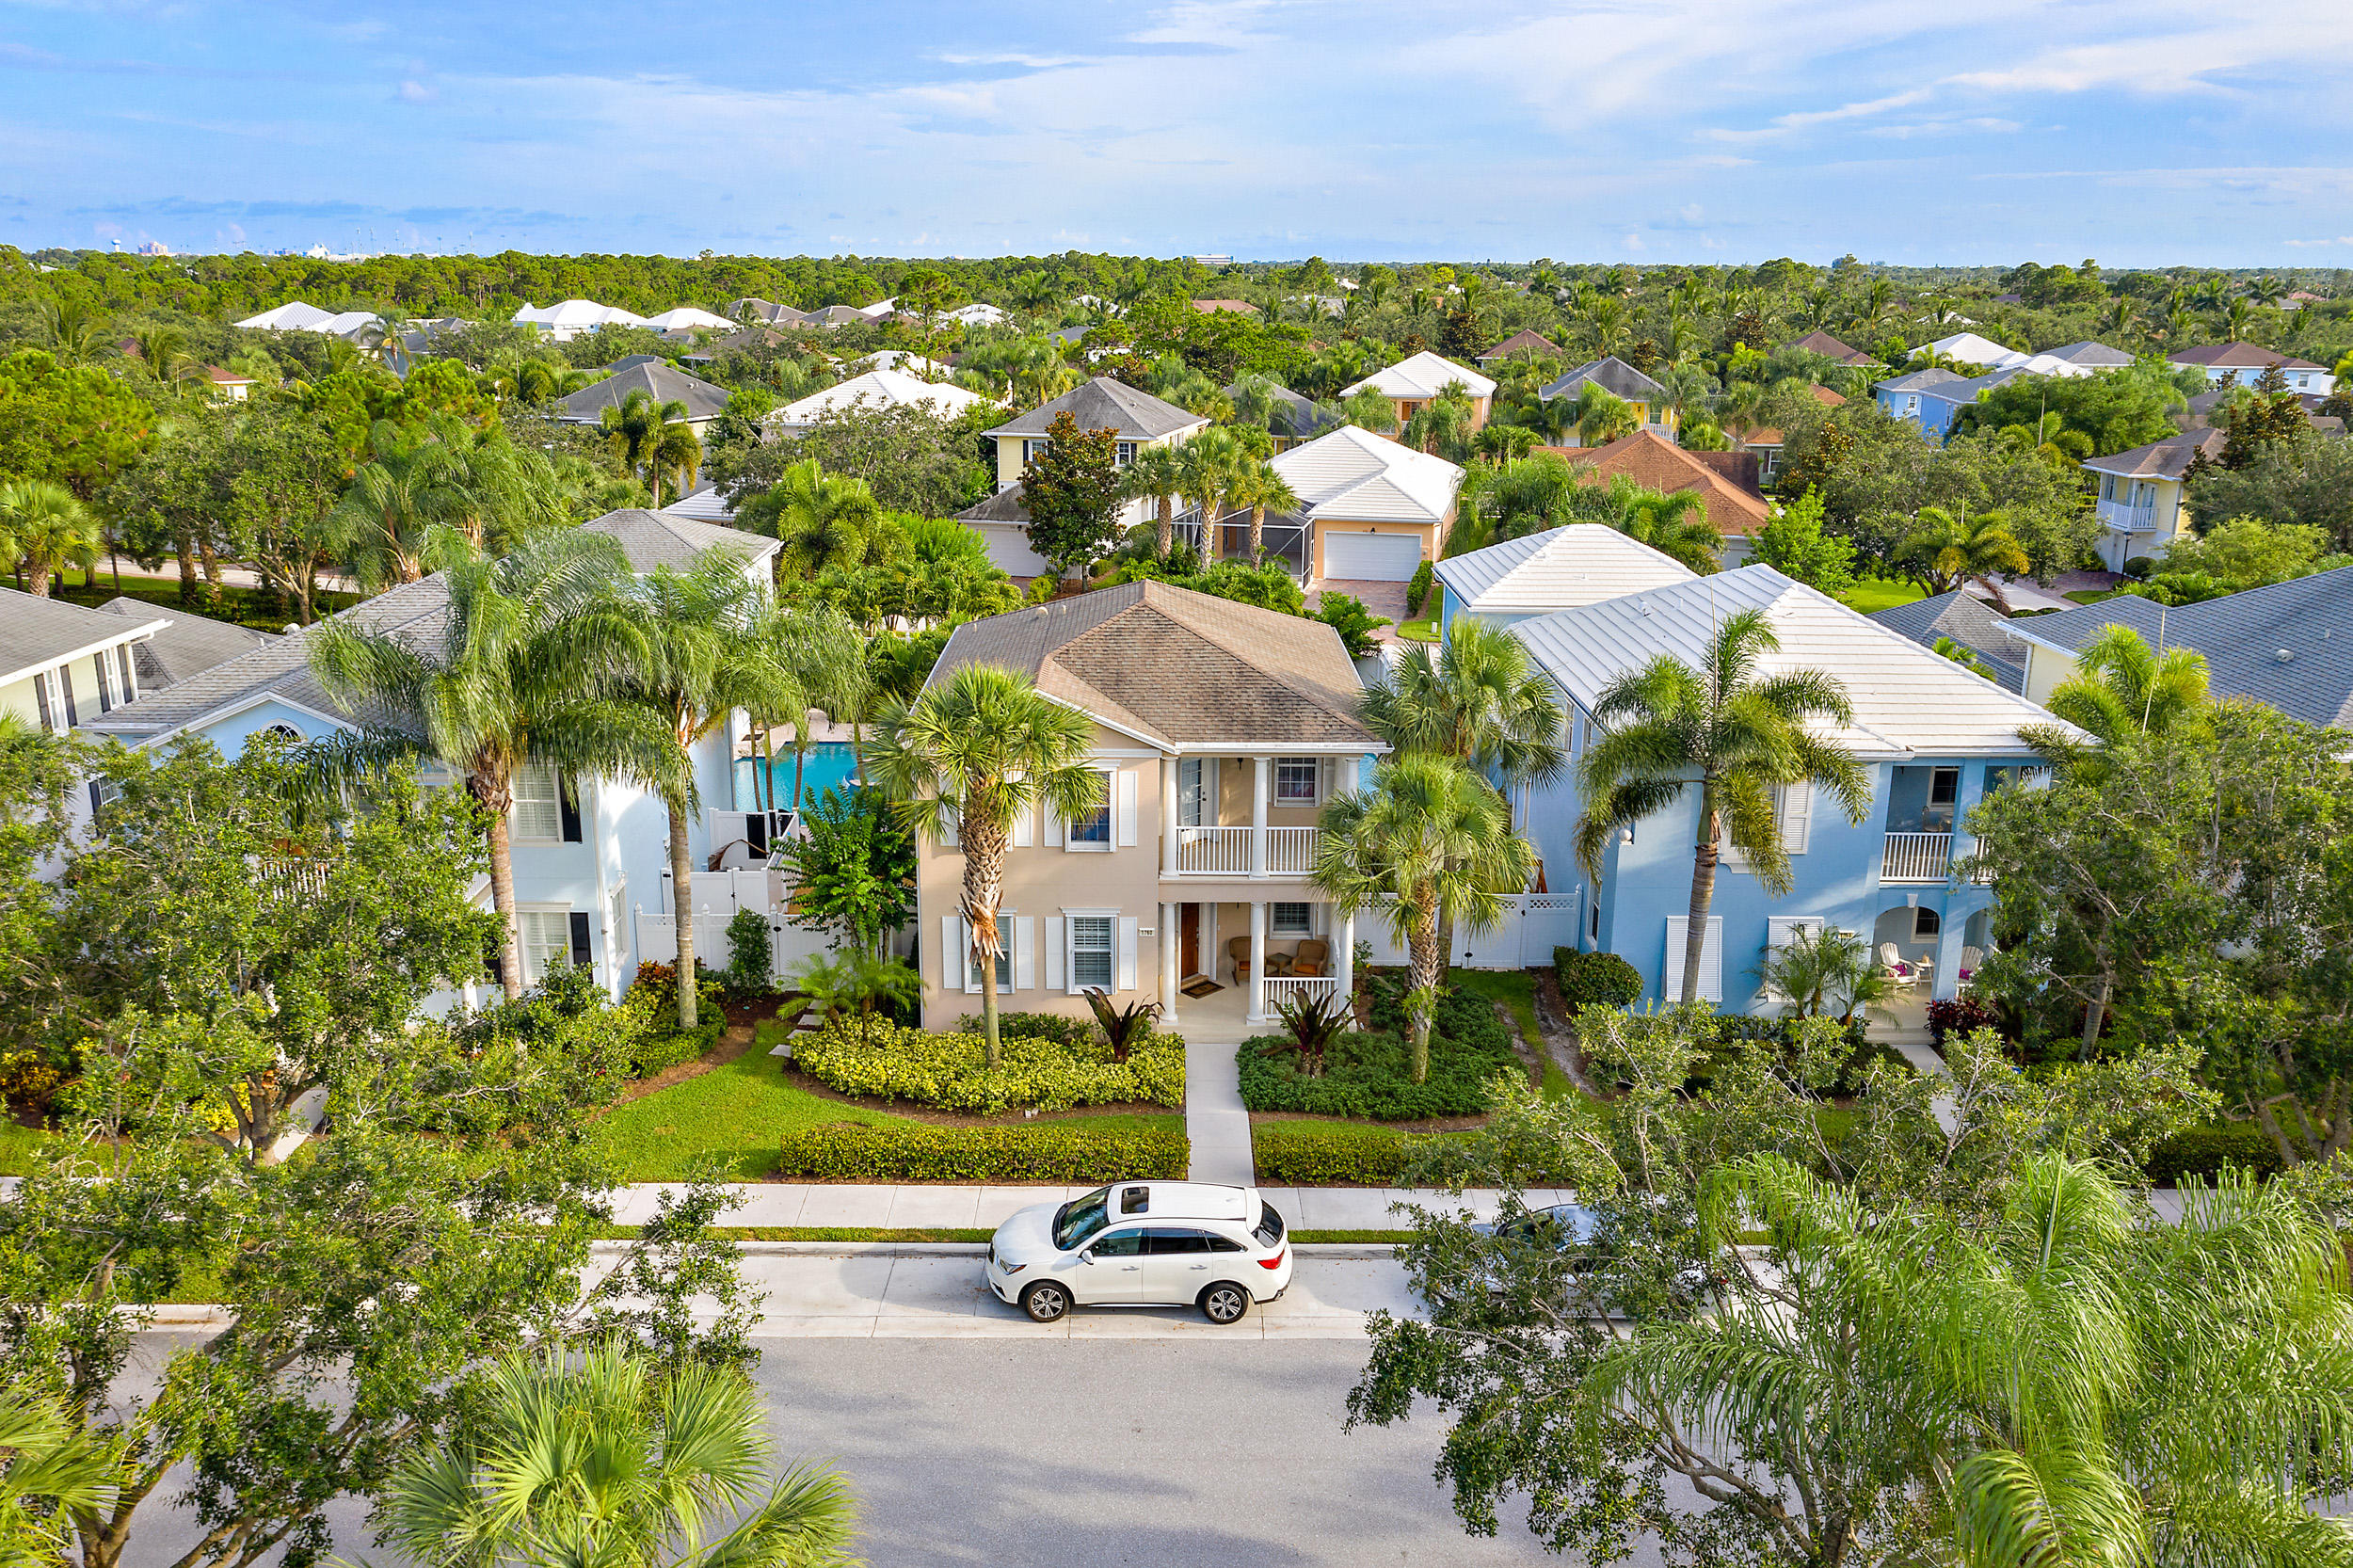 New Home for sale at 1760 Community Drive in Jupiter